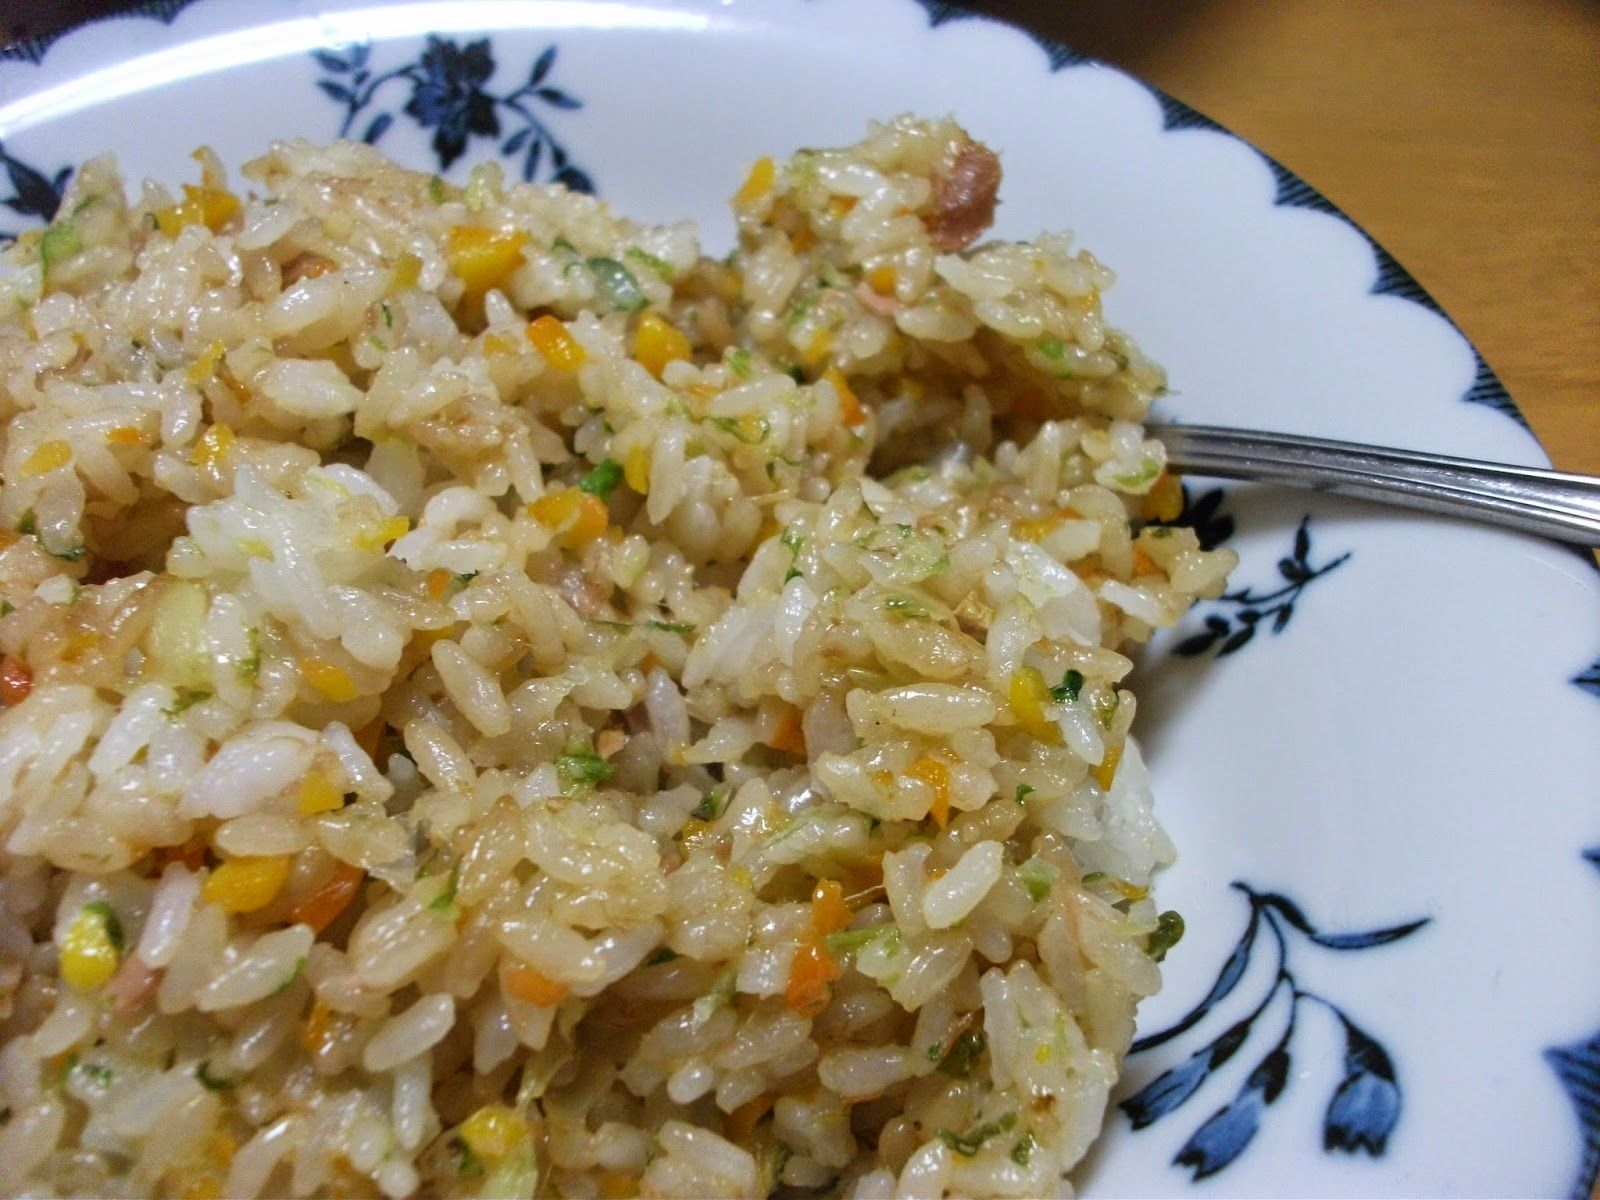 Easy tuna chahanjapanese fried rice recipe asian delights food easy tuna chahanjapanese fried rice recipe forumfinder Gallery